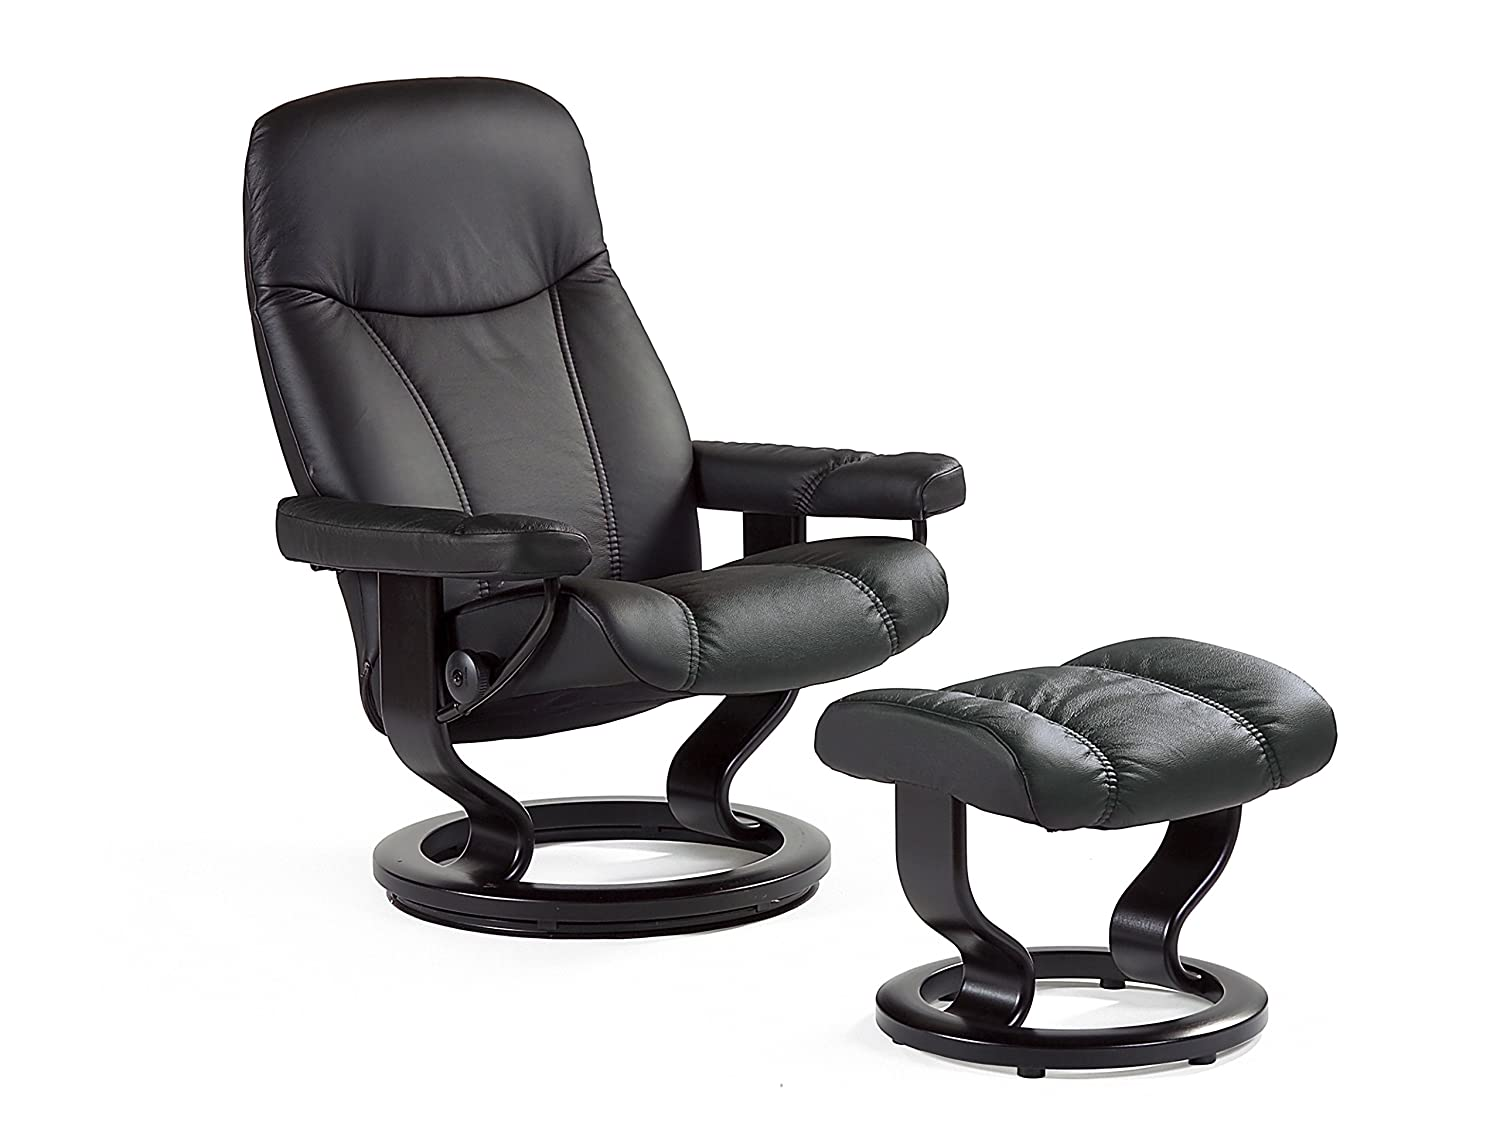 original stressless consul m relaxsessel mit hocker. Black Bedroom Furniture Sets. Home Design Ideas